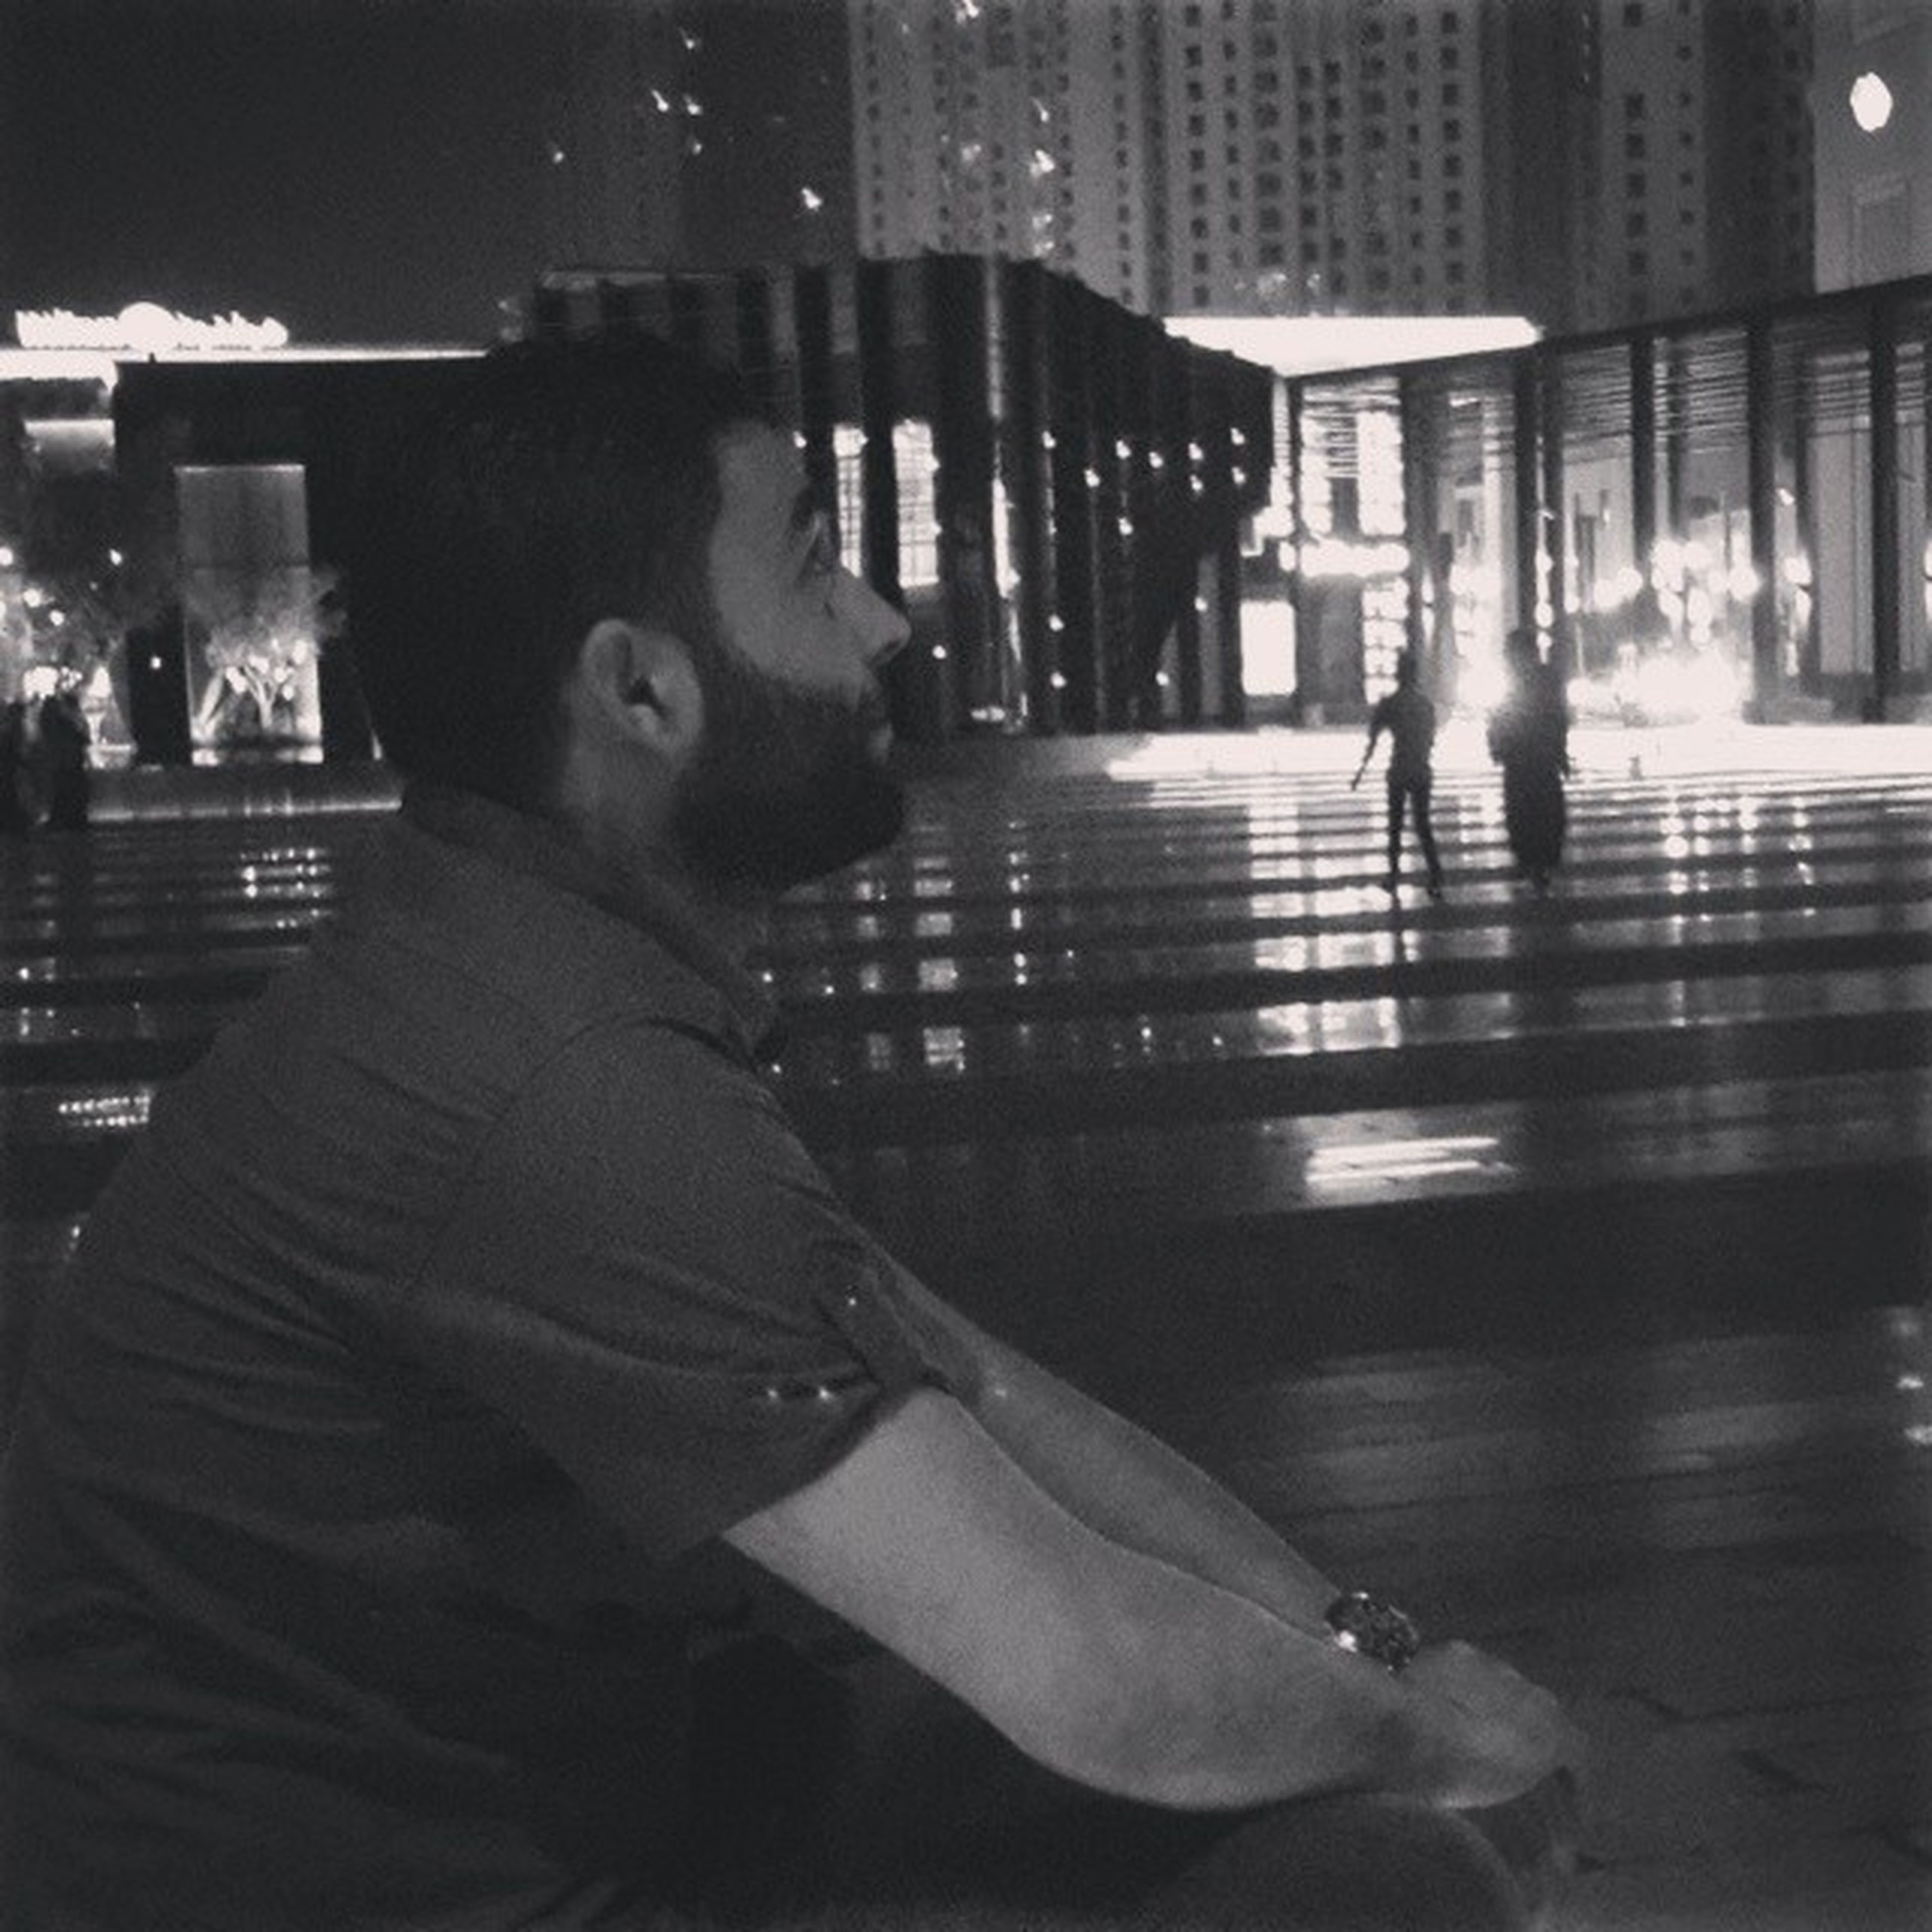 lifestyles, building exterior, architecture, built structure, night, leisure activity, men, city, person, illuminated, city life, rear view, walking, full length, incidental people, casual clothing, focus on foreground, standing